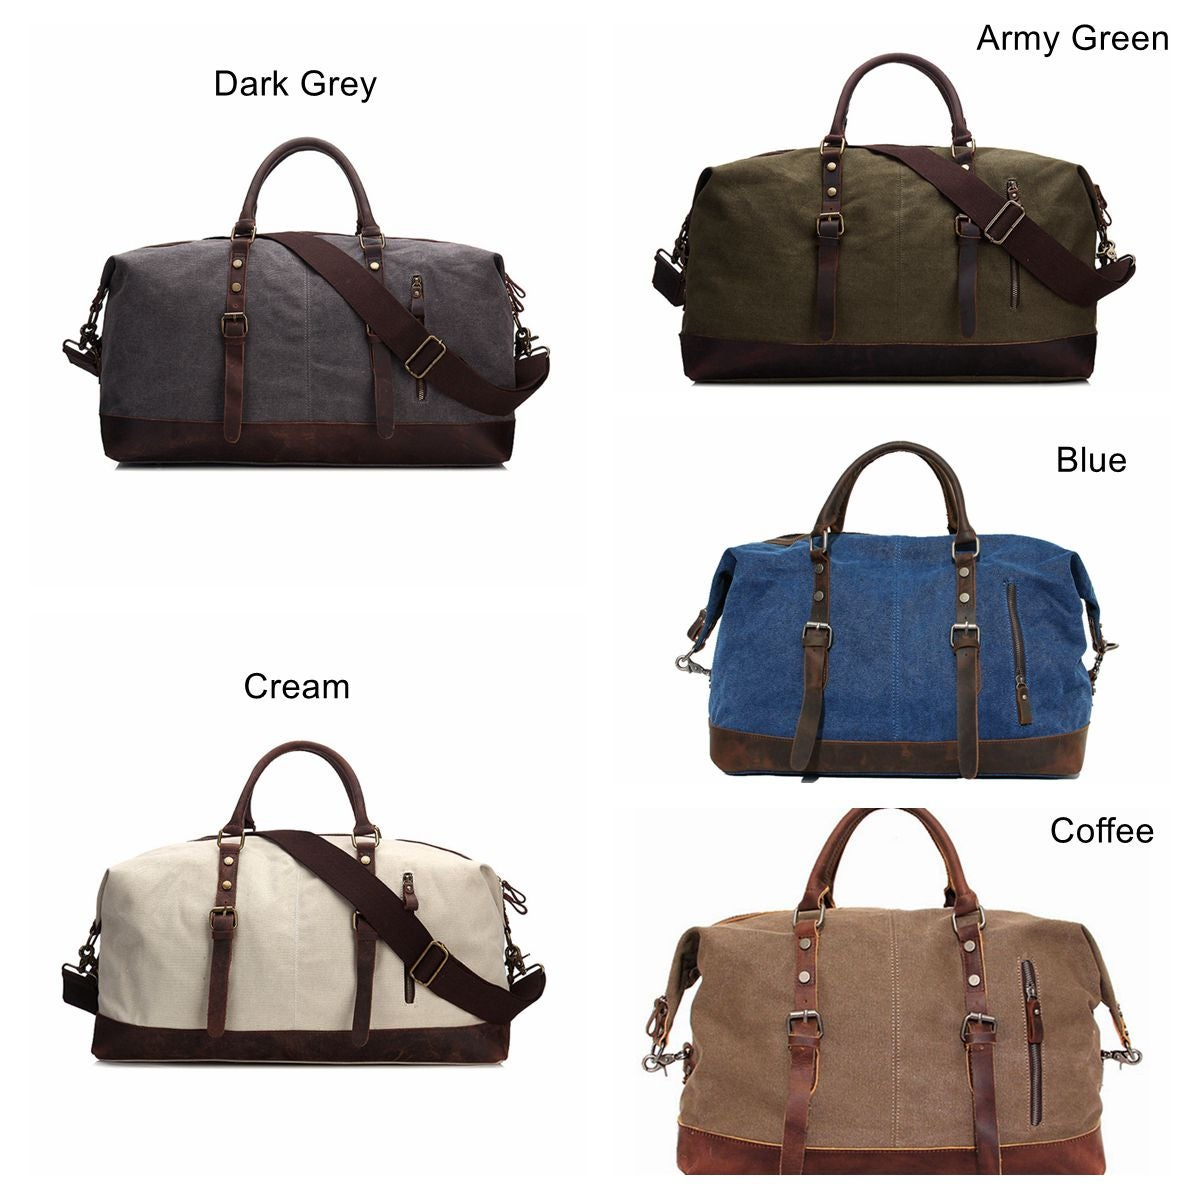 bd918aac235b Handmade Waxed Canvas Leather Travel Bag Duffle Bag Holdall Luggage  Weekender Bag 12031